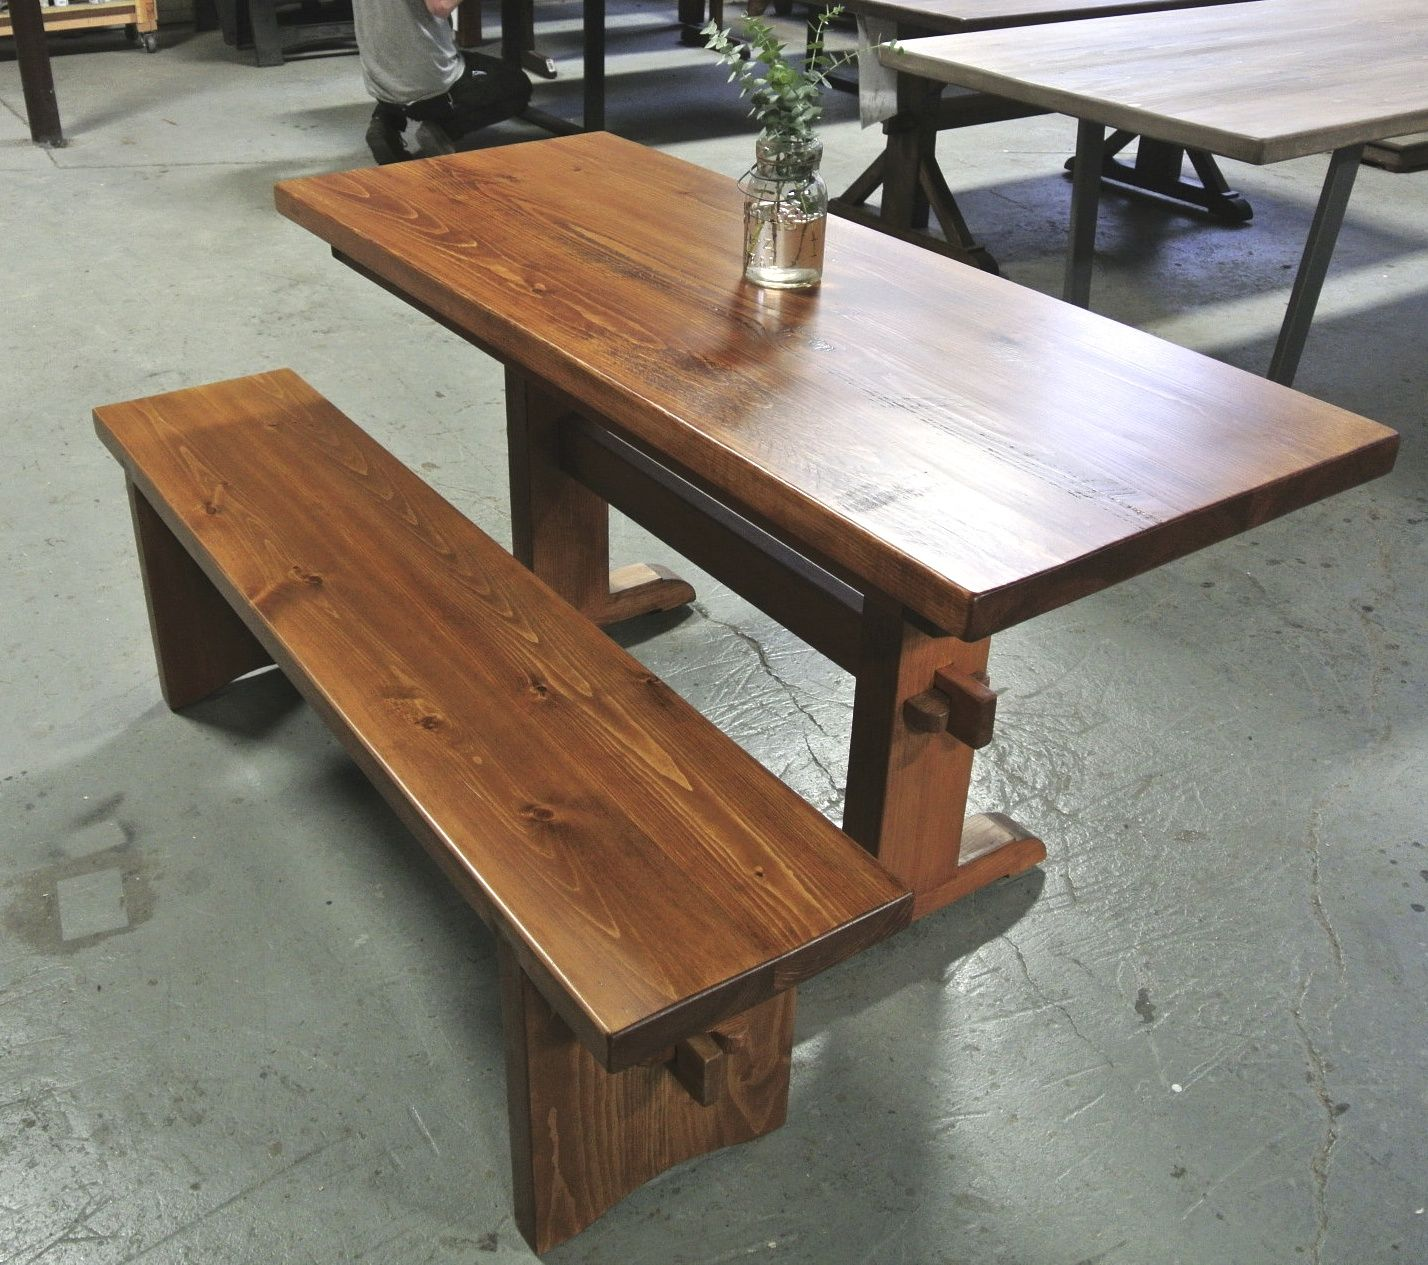 Small Trestle Table With Company Boards Company Boards Featured In Other Photo And Small Trestle Bench Made In Provid Table Dining Table Rustic Dining Table